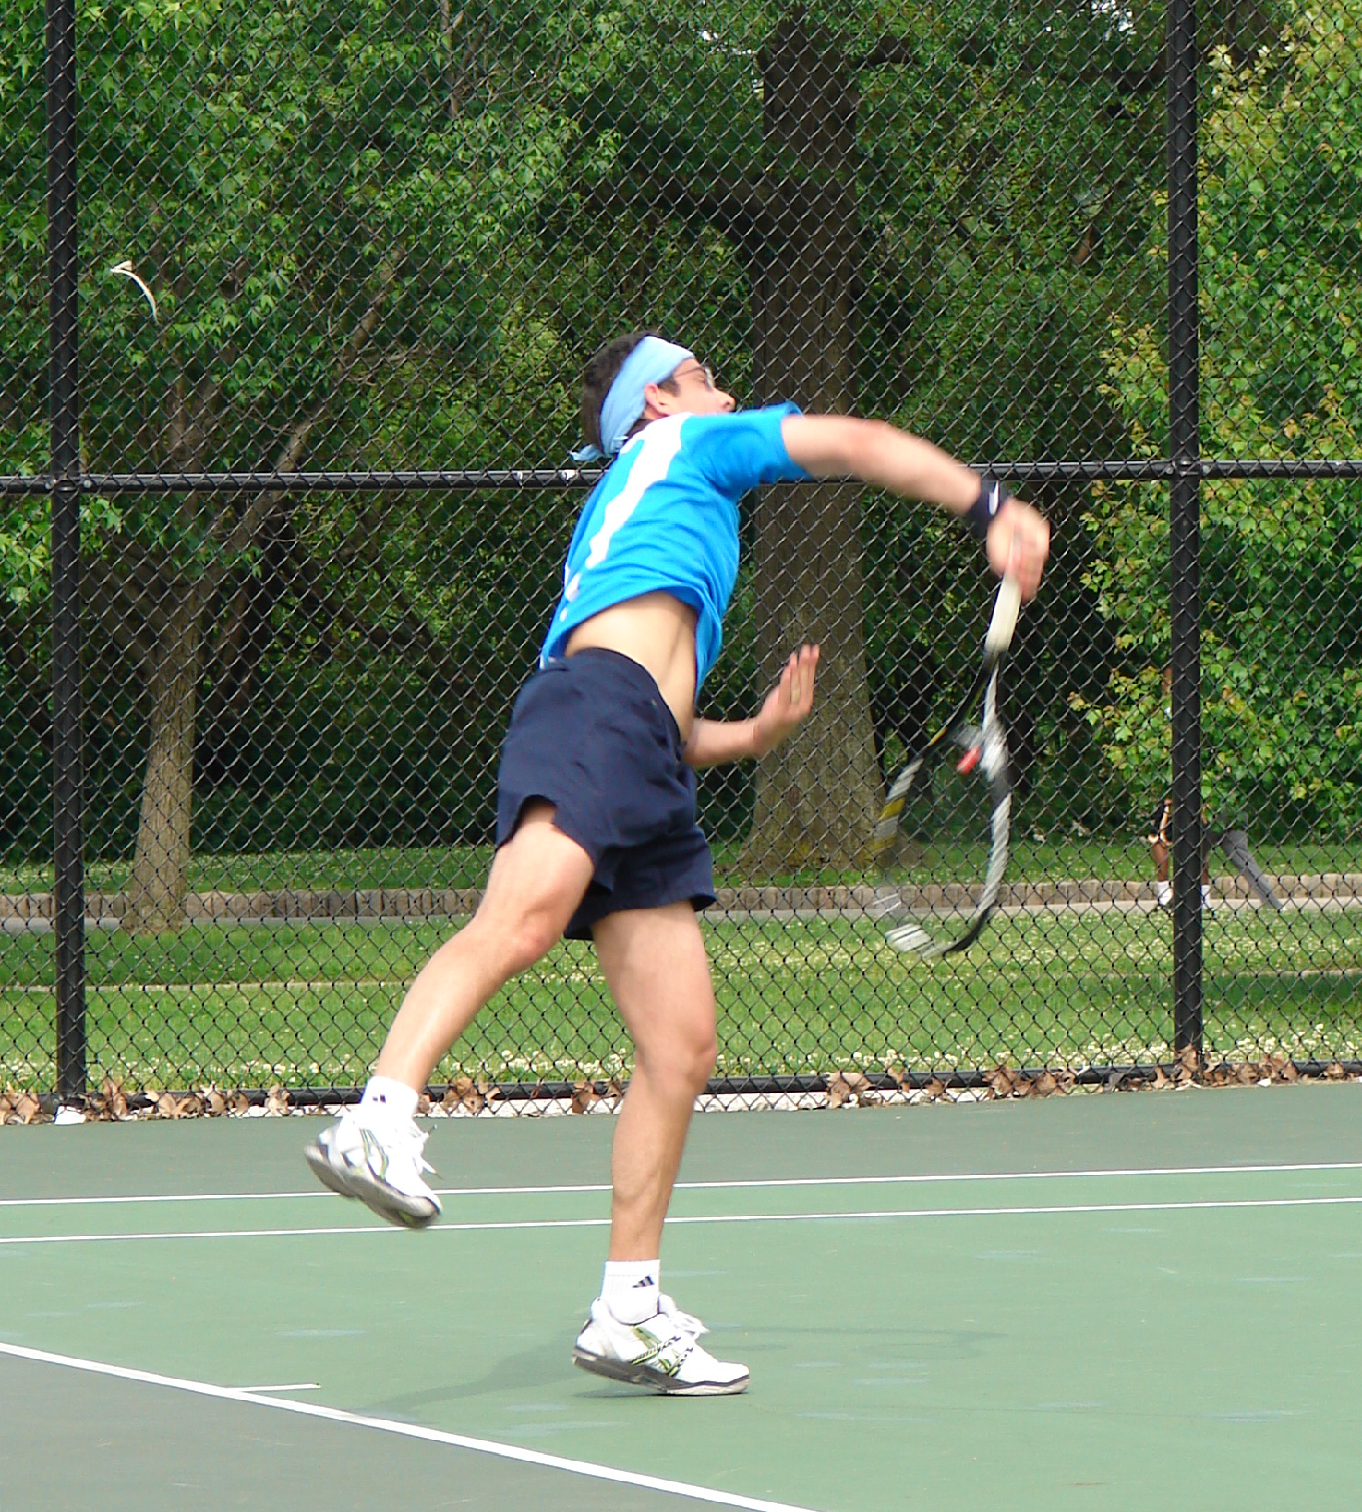 Pork Chops and Applesauce | My tennis blog | Page 11